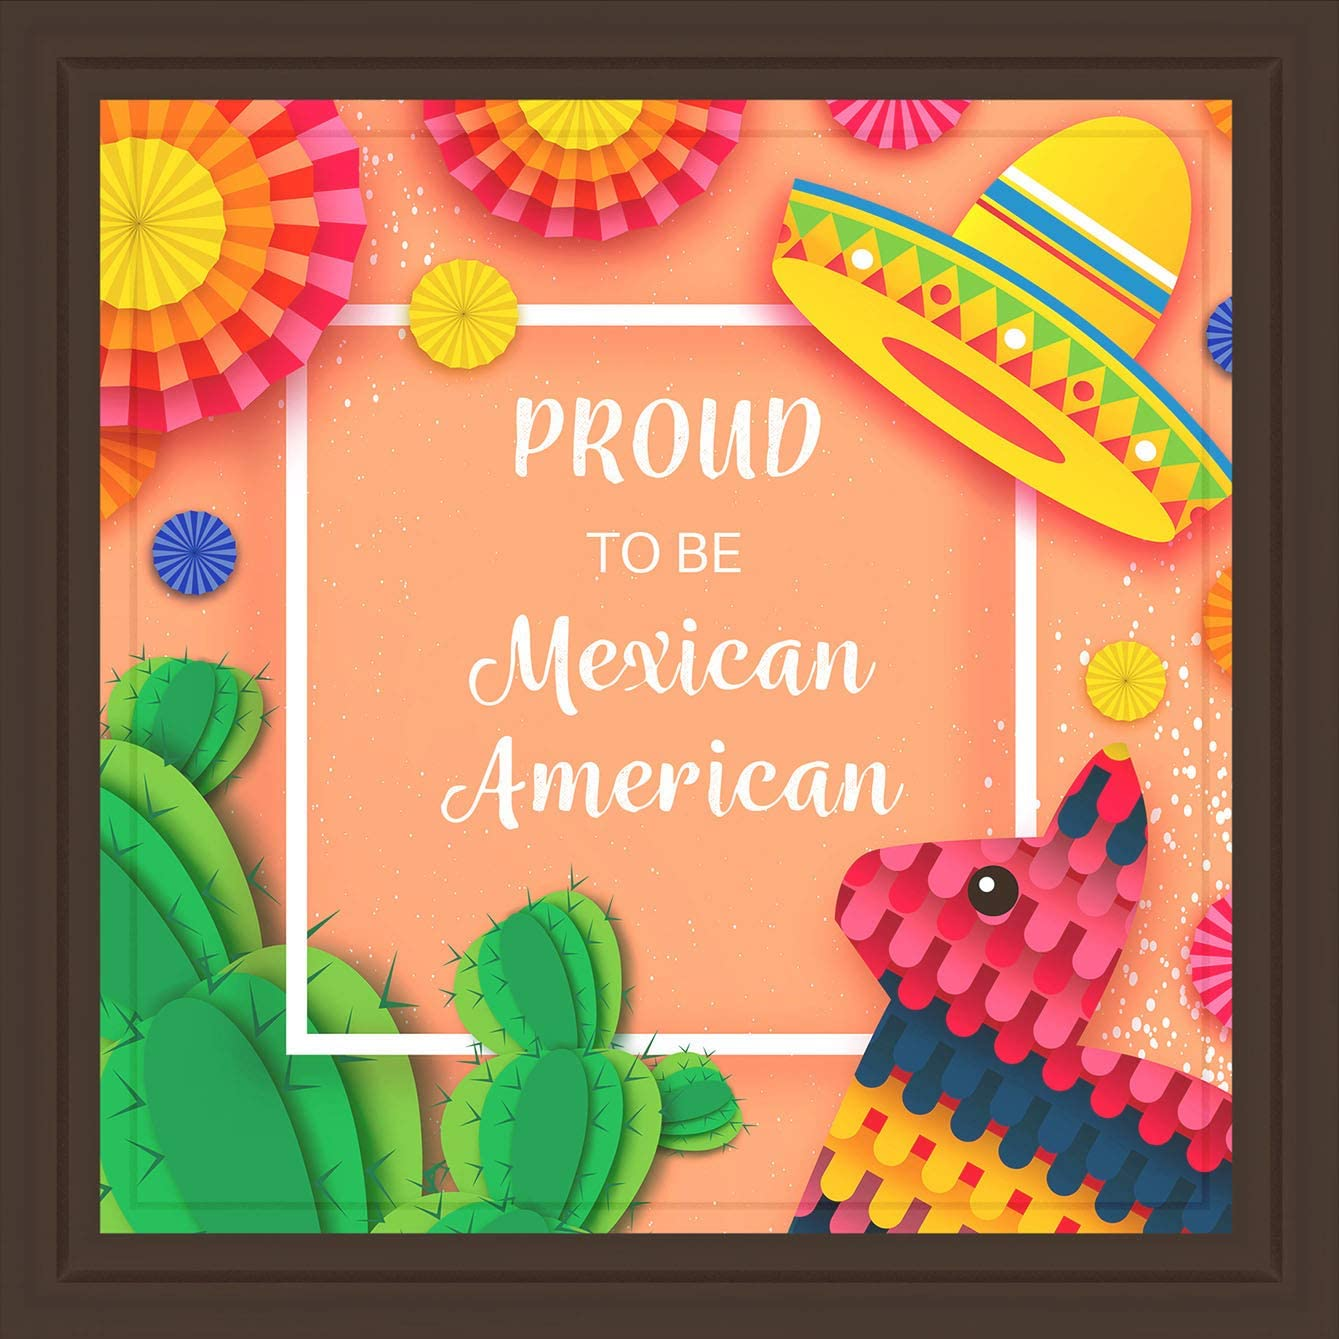 Amazon Com Mexican Gifts Fun 7x7 Tile Artwork For Mexican Home Decor For Grandparents Colorful Mexican Decor For Kitchen Great Present For Mexican American Friend Posters Prints